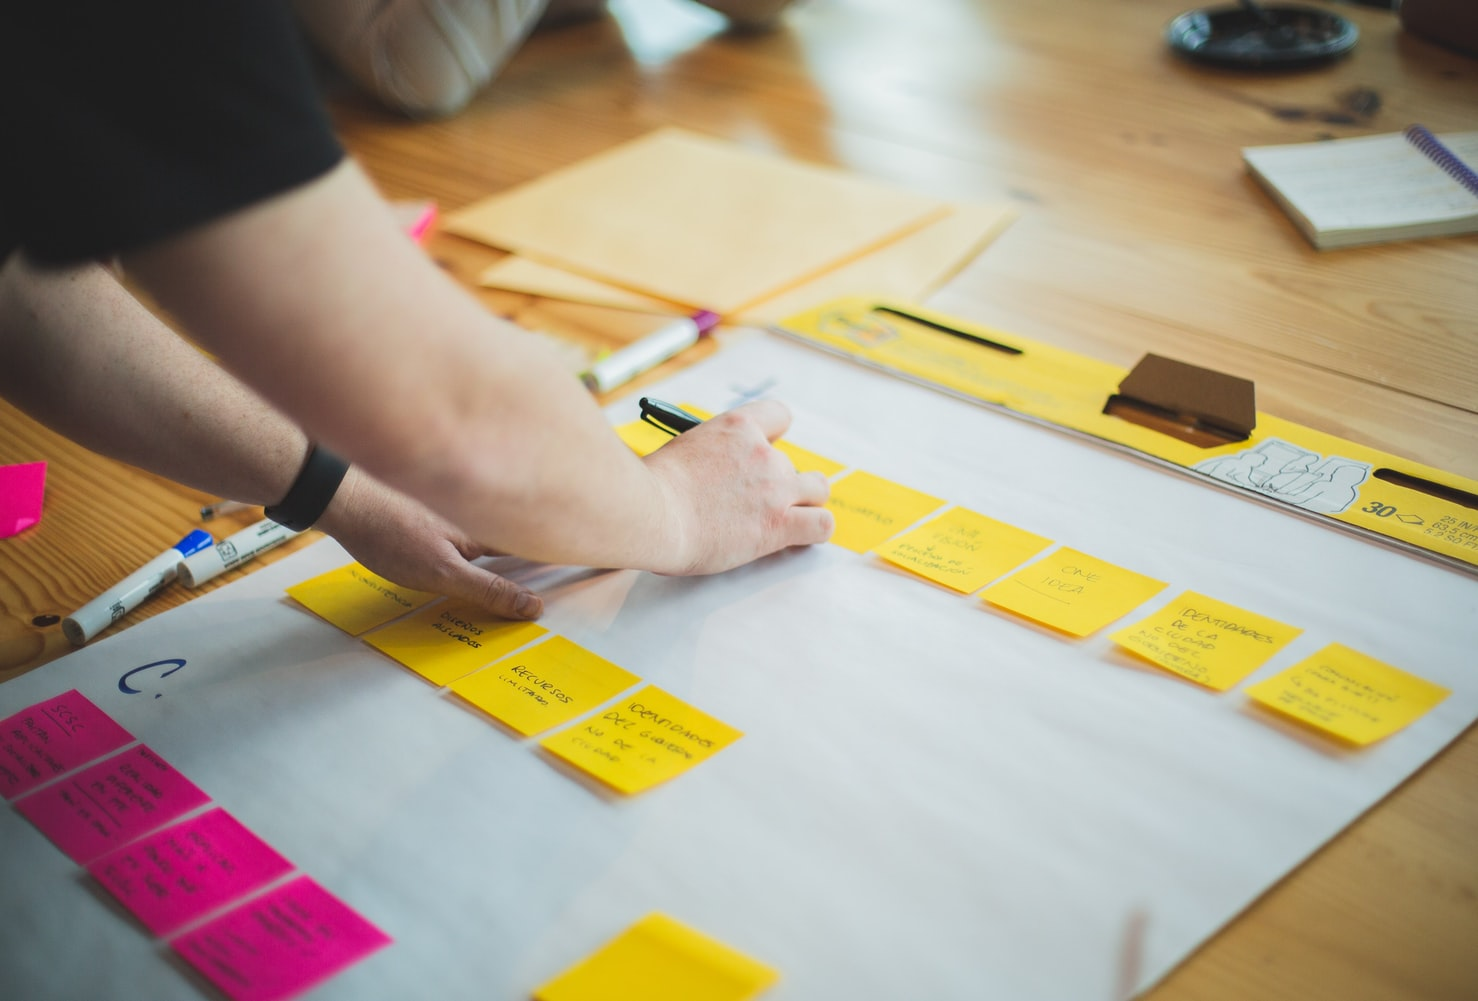 New to Strategic Planning? Here's How to Make the Most of Your Session